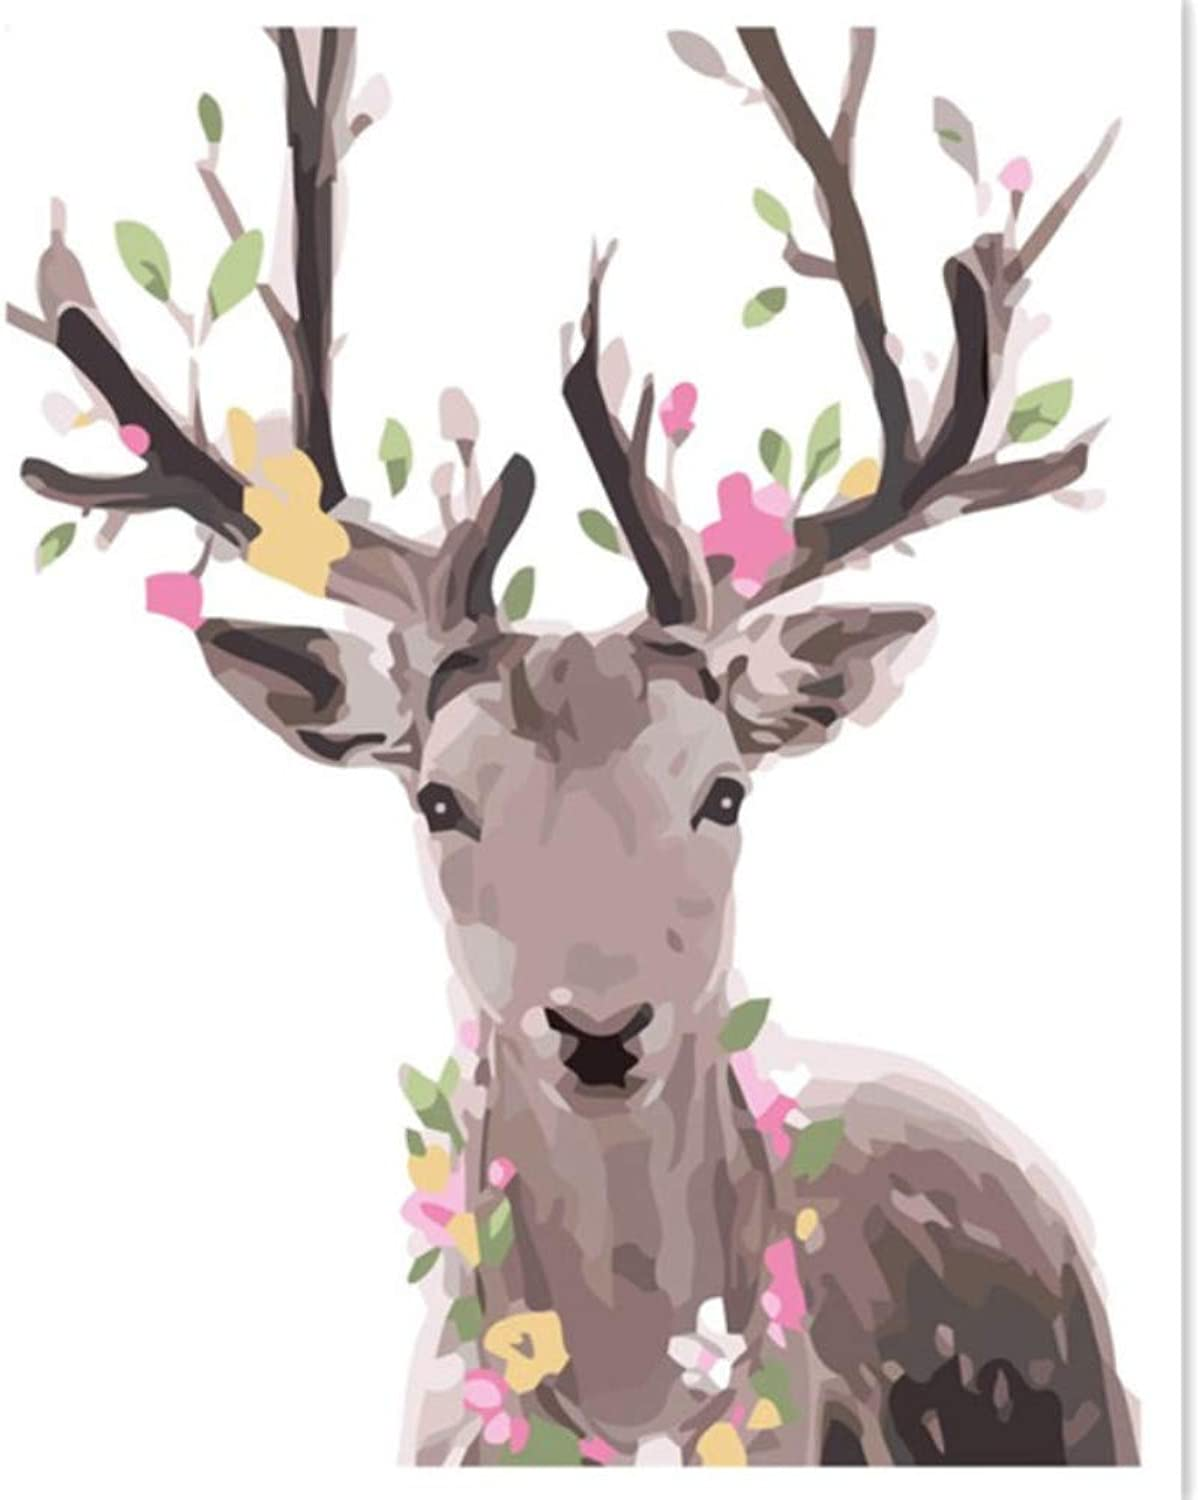 Deer Pictures DIY Painting by Numbers Kits Cotton Painting Paint On Cotton Unique Gift Home Decor Wall Artwork 50x60CM